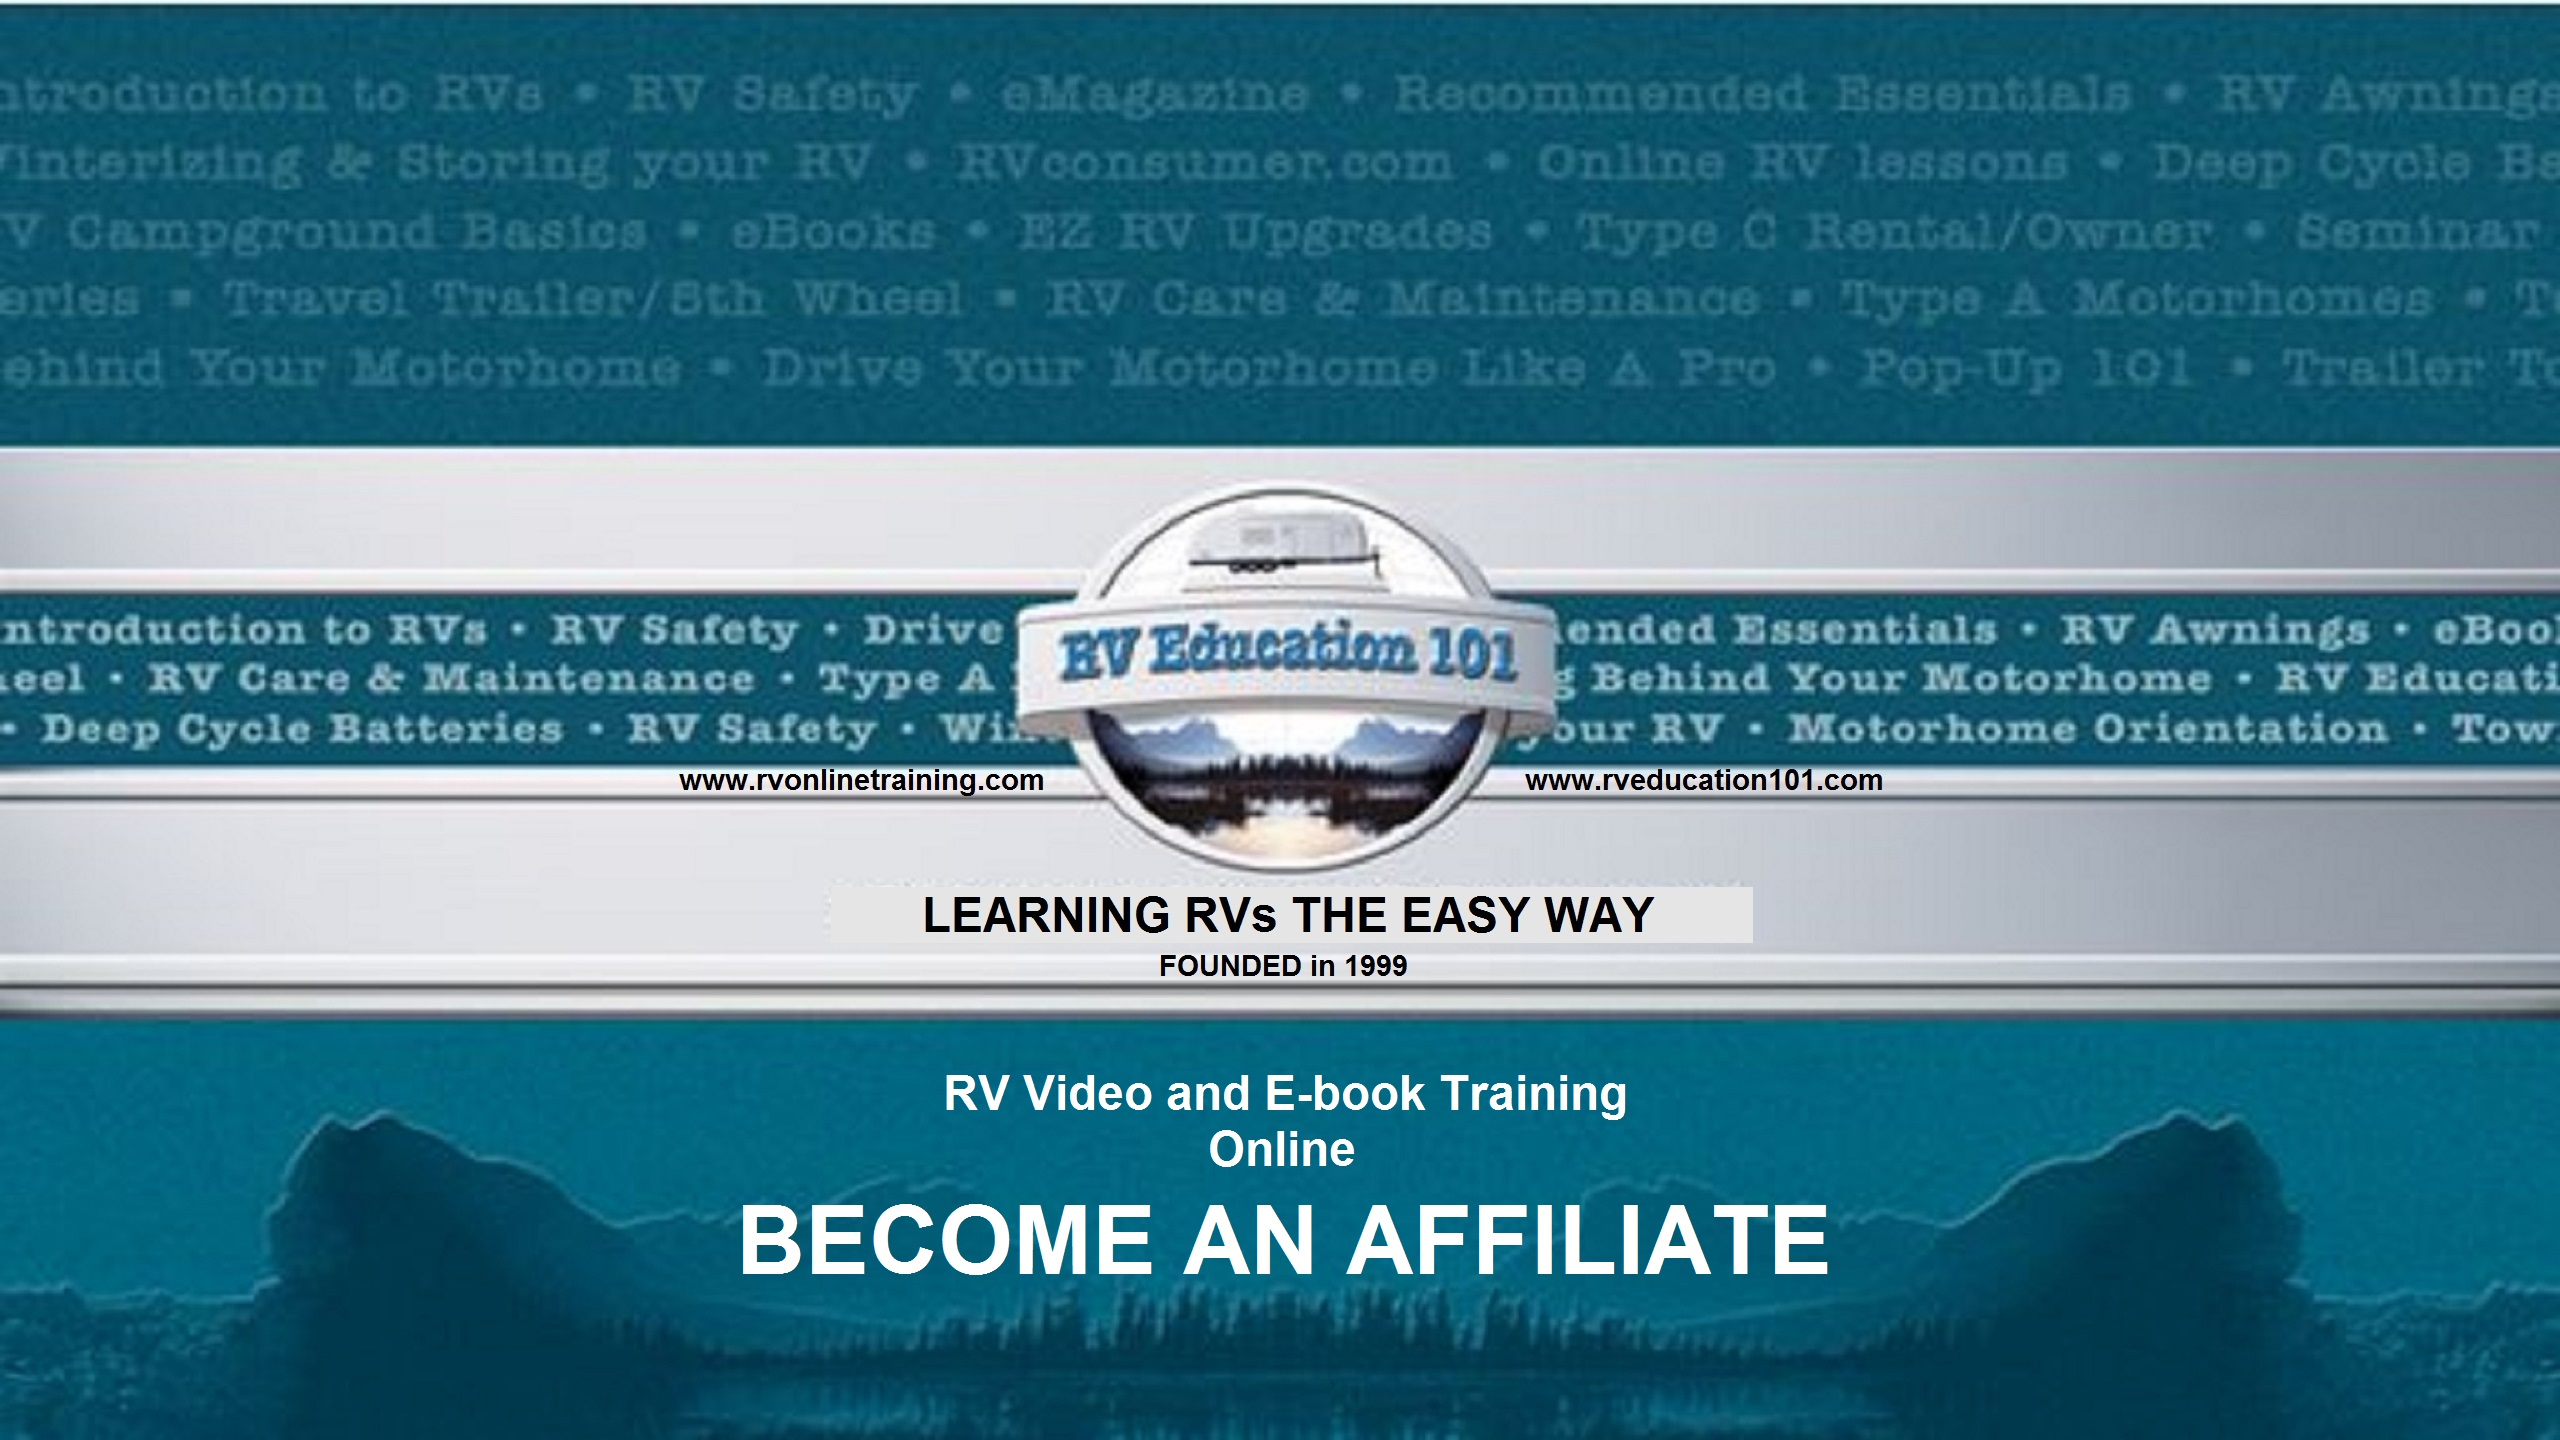 RV Education 101 Affiliate Program